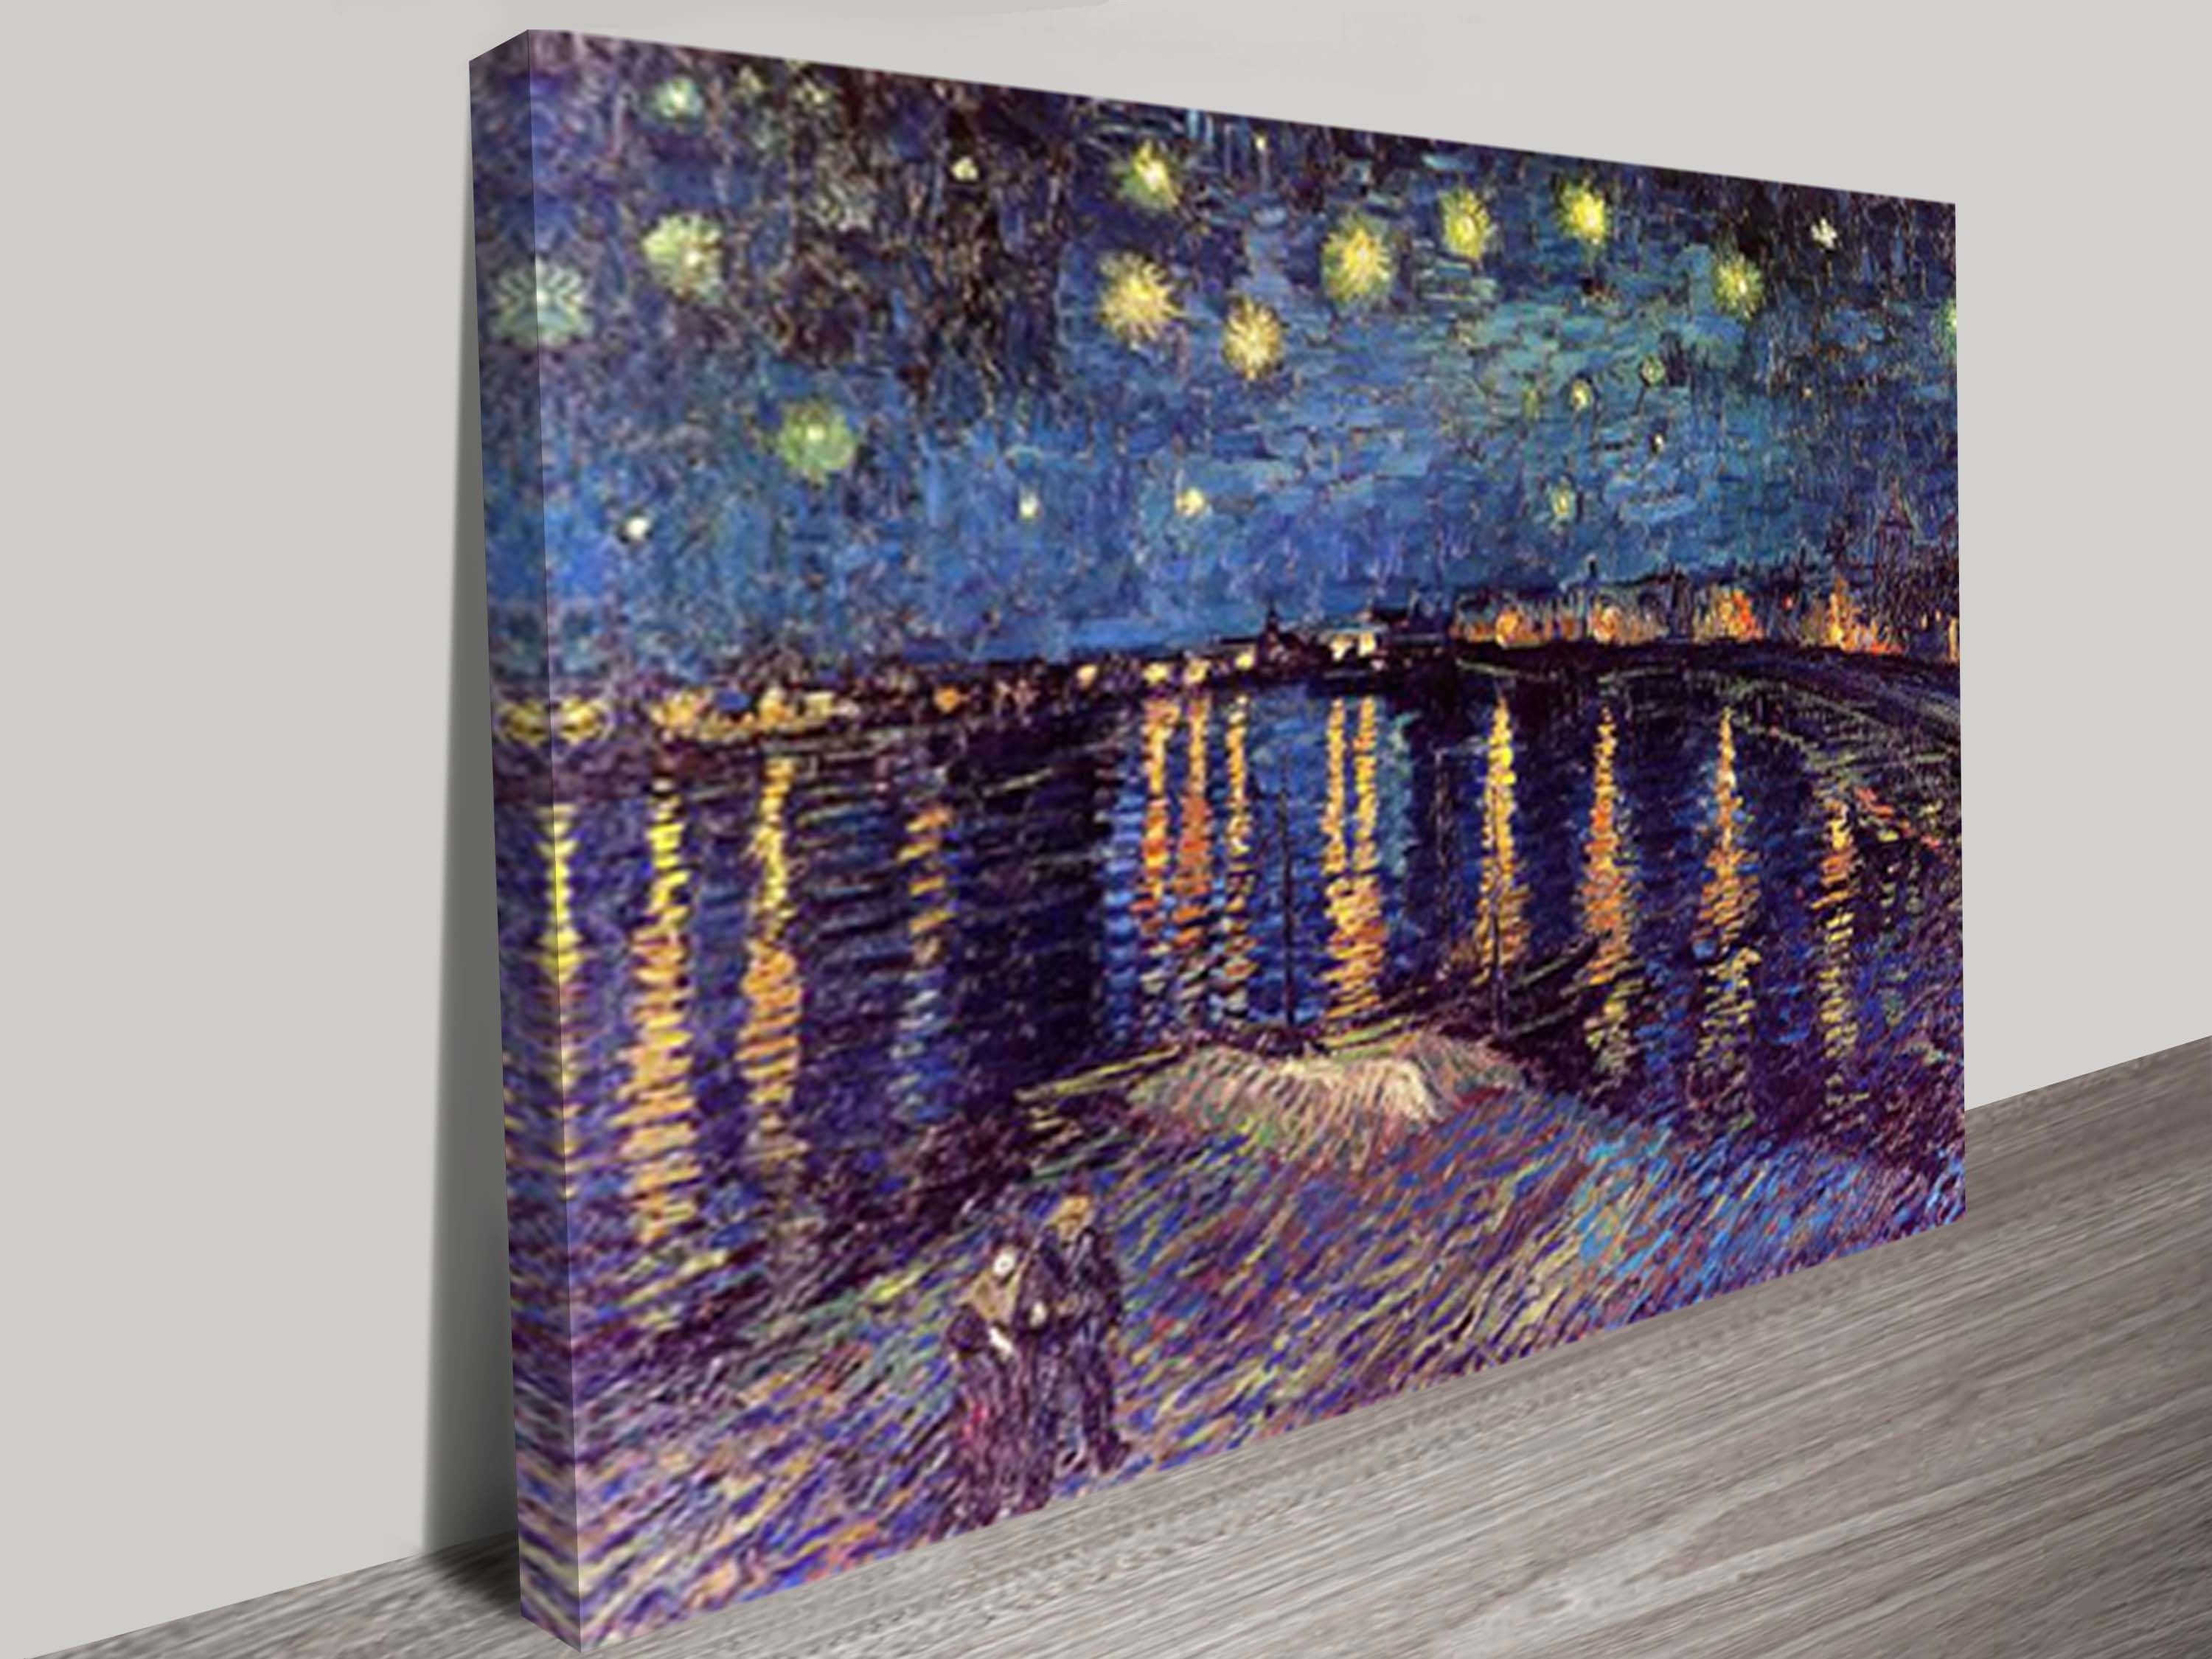 Well Liked Vincent Van Gogh Wall Art In Starry Night Over The Rhone Art Printvincent Van & Explore Gallery of Vincent Van Gogh Wall Art (Showing 3 of 15 Photos)